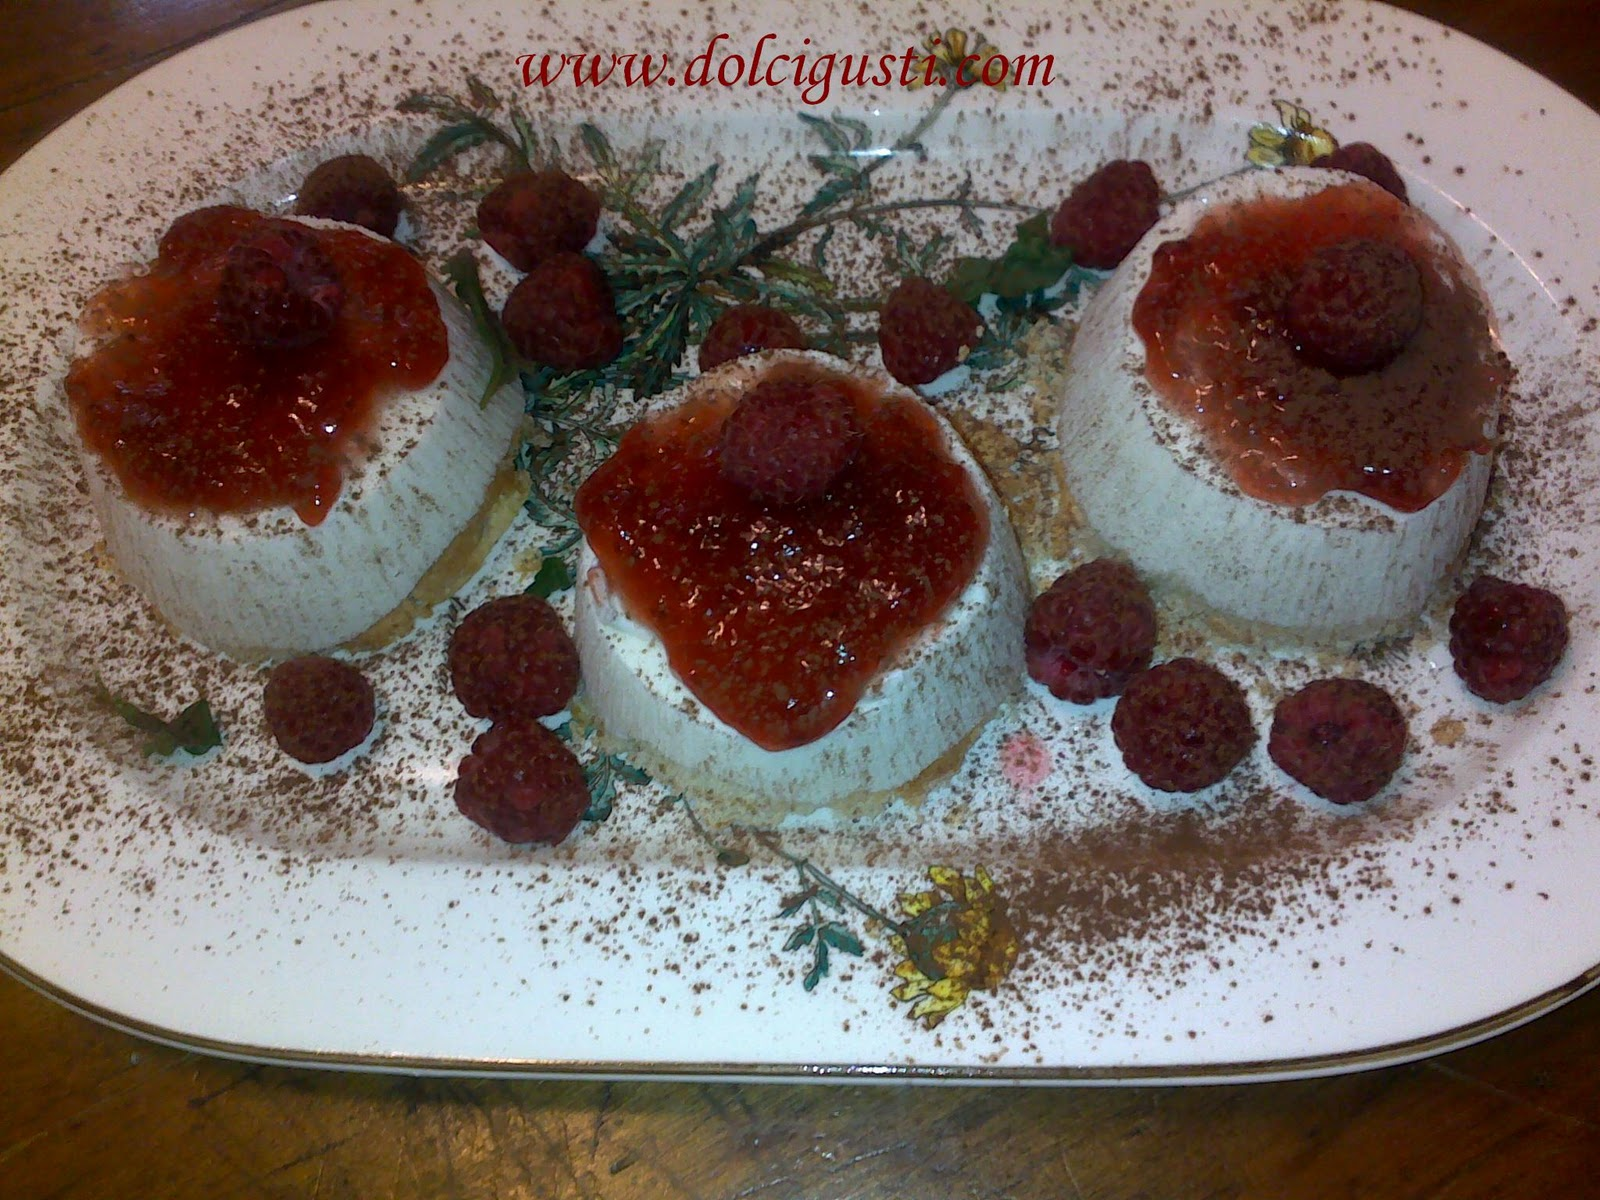 chocolate and cakes: ricotta and raspberry pudding